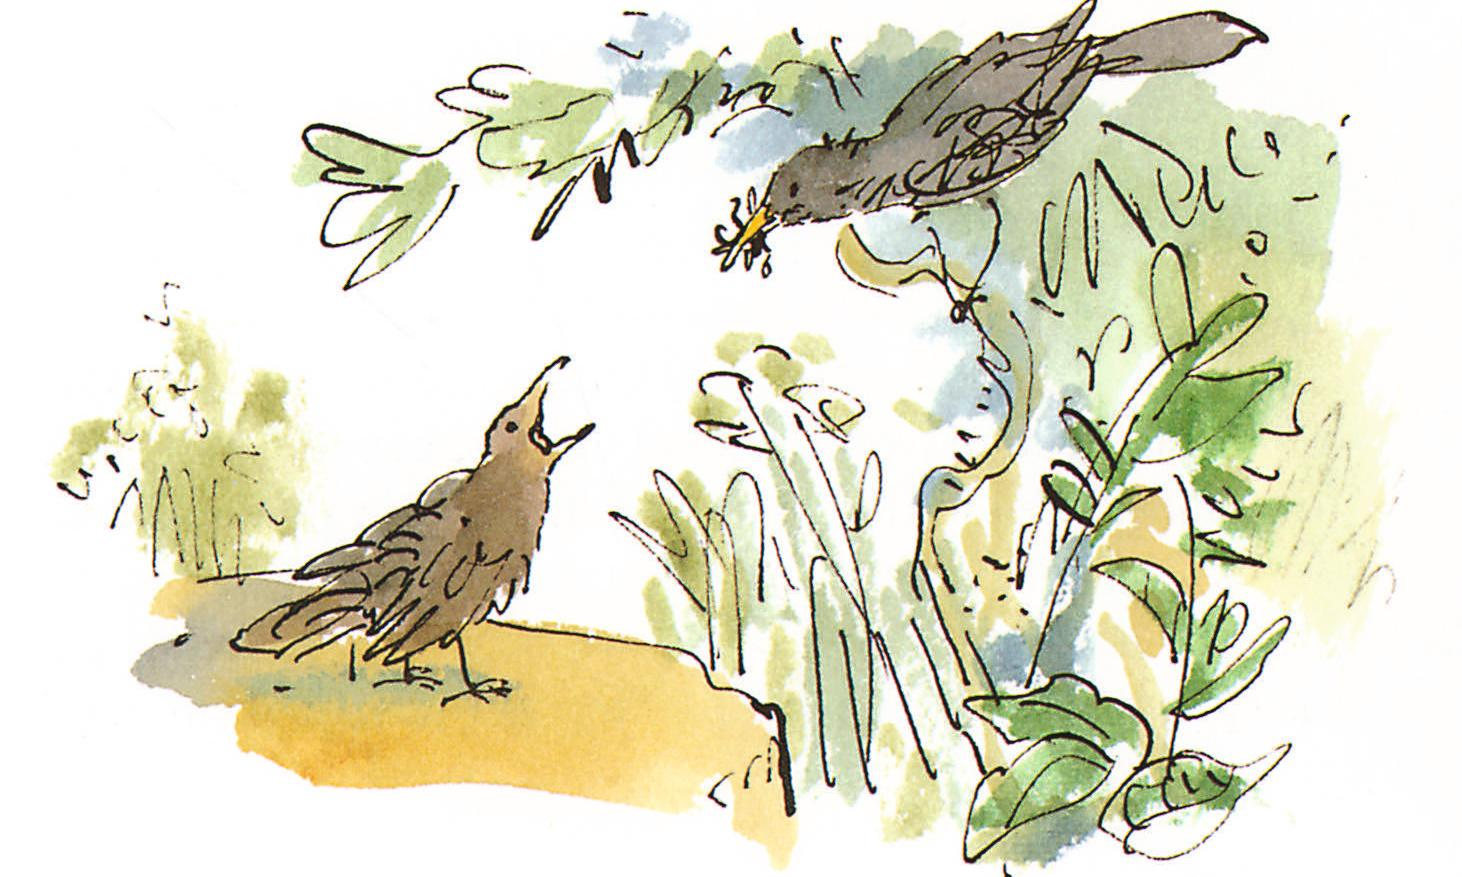 Roald Dahl's nature journal My Year republished after decades out of print